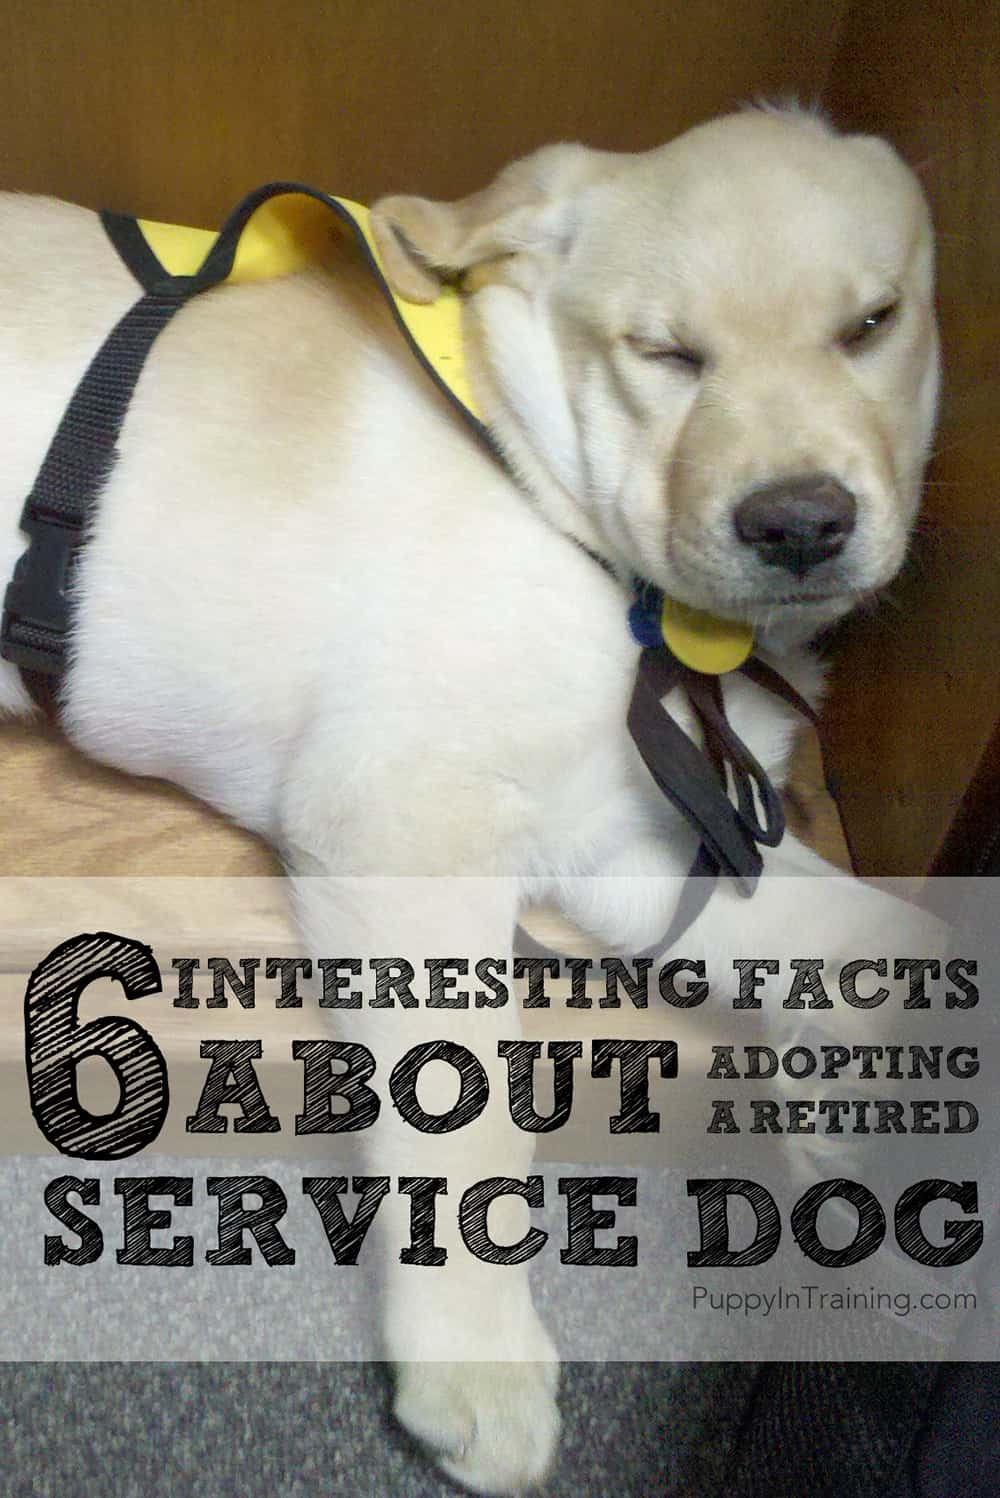 Facts about adopting a retired service dog